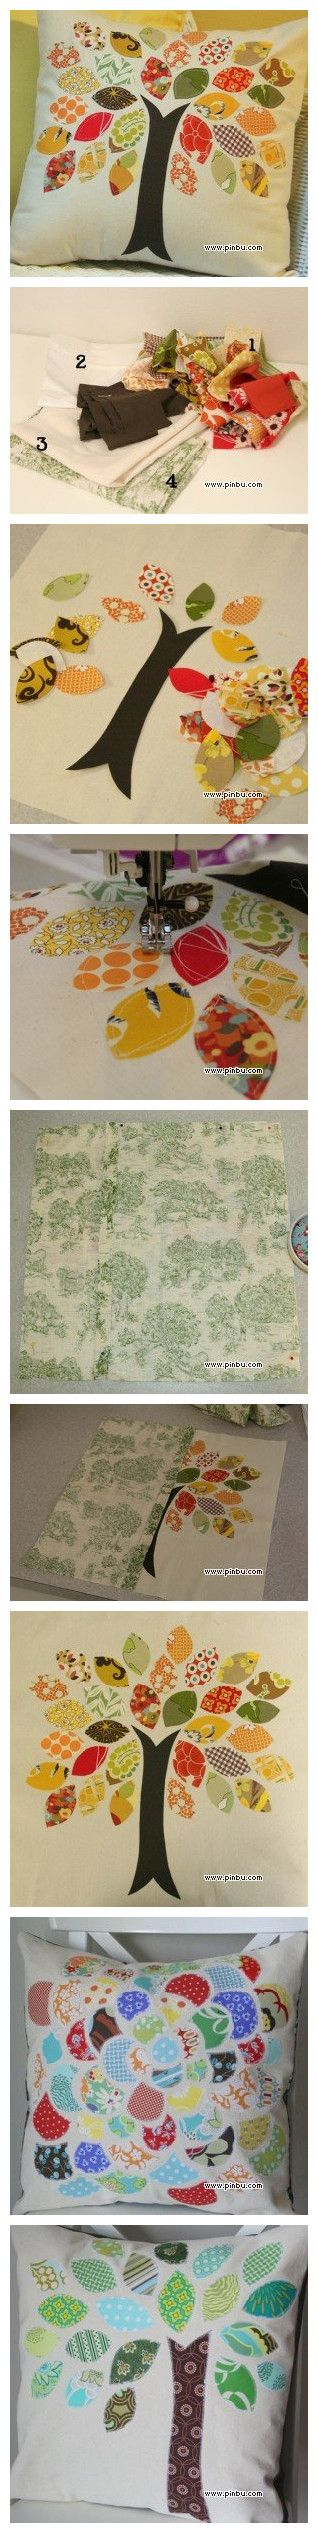 DIY pillow                                                       …                                                                                                                                                     Más